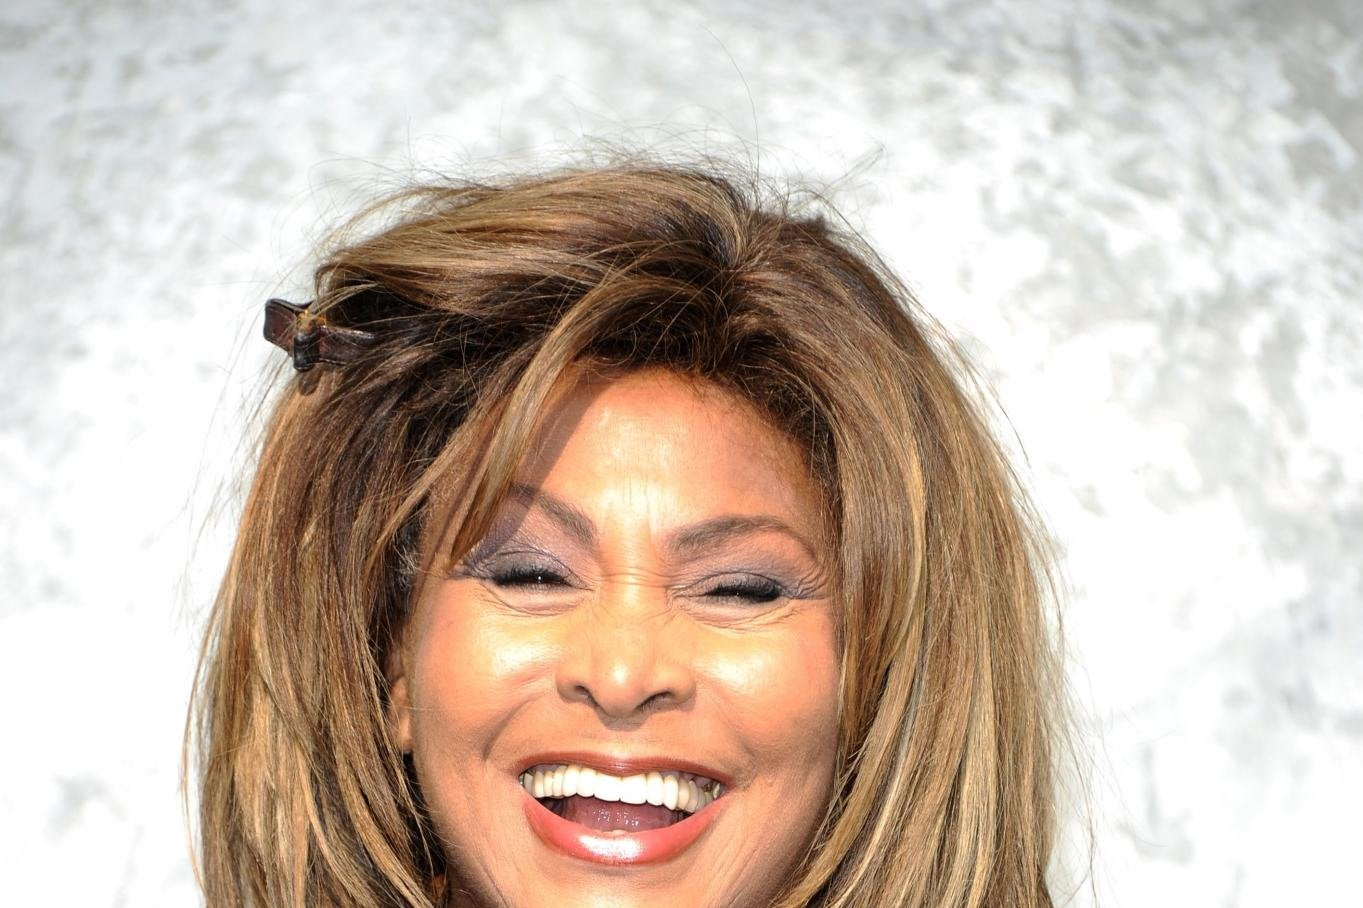 Tina Turner Achieves New Kind of Happiness at 73 - Essence